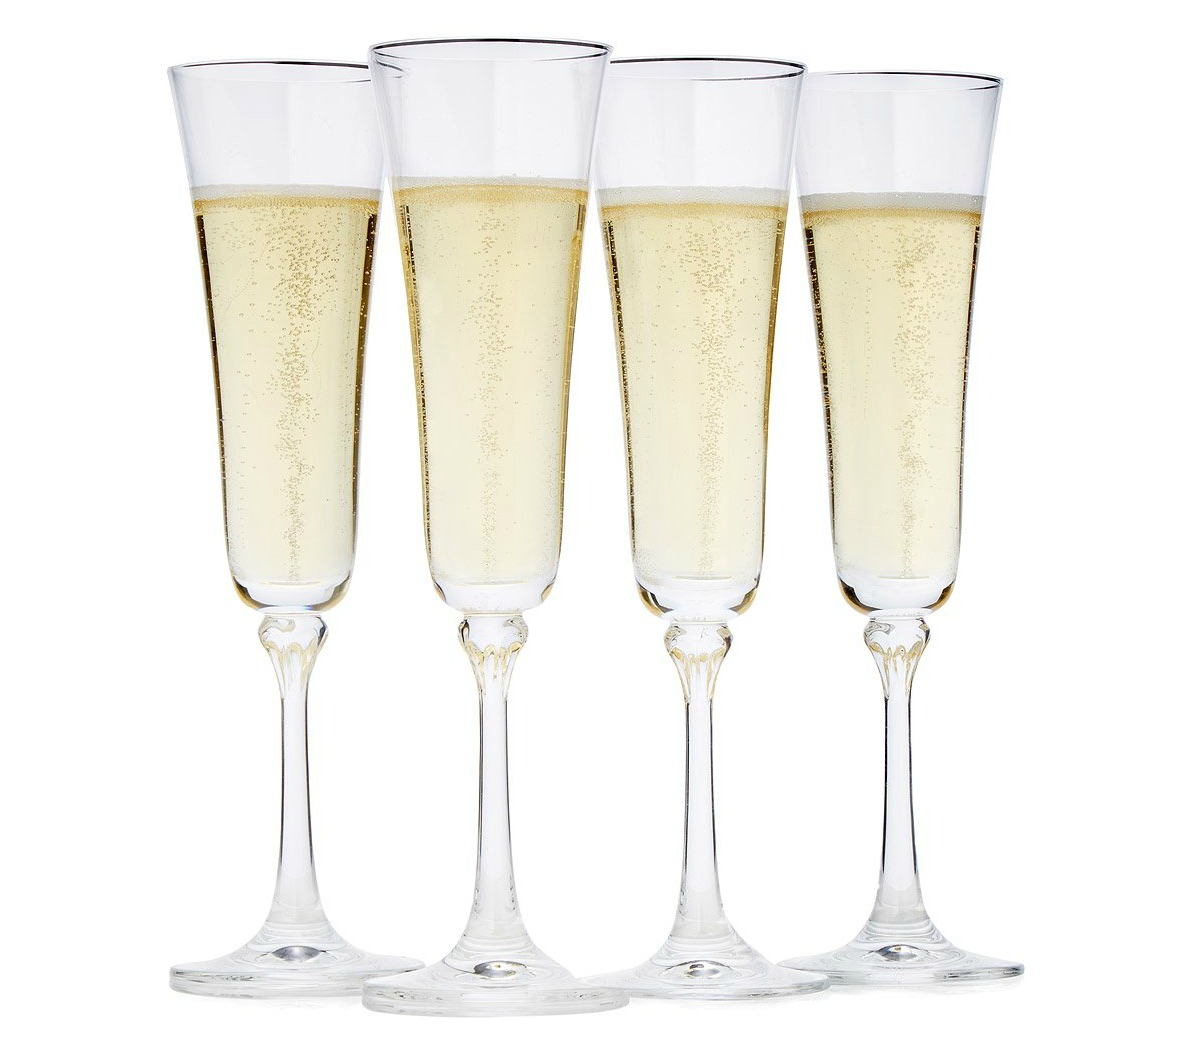 Constant Sparkling Champagne Flutes | UncommonGoods